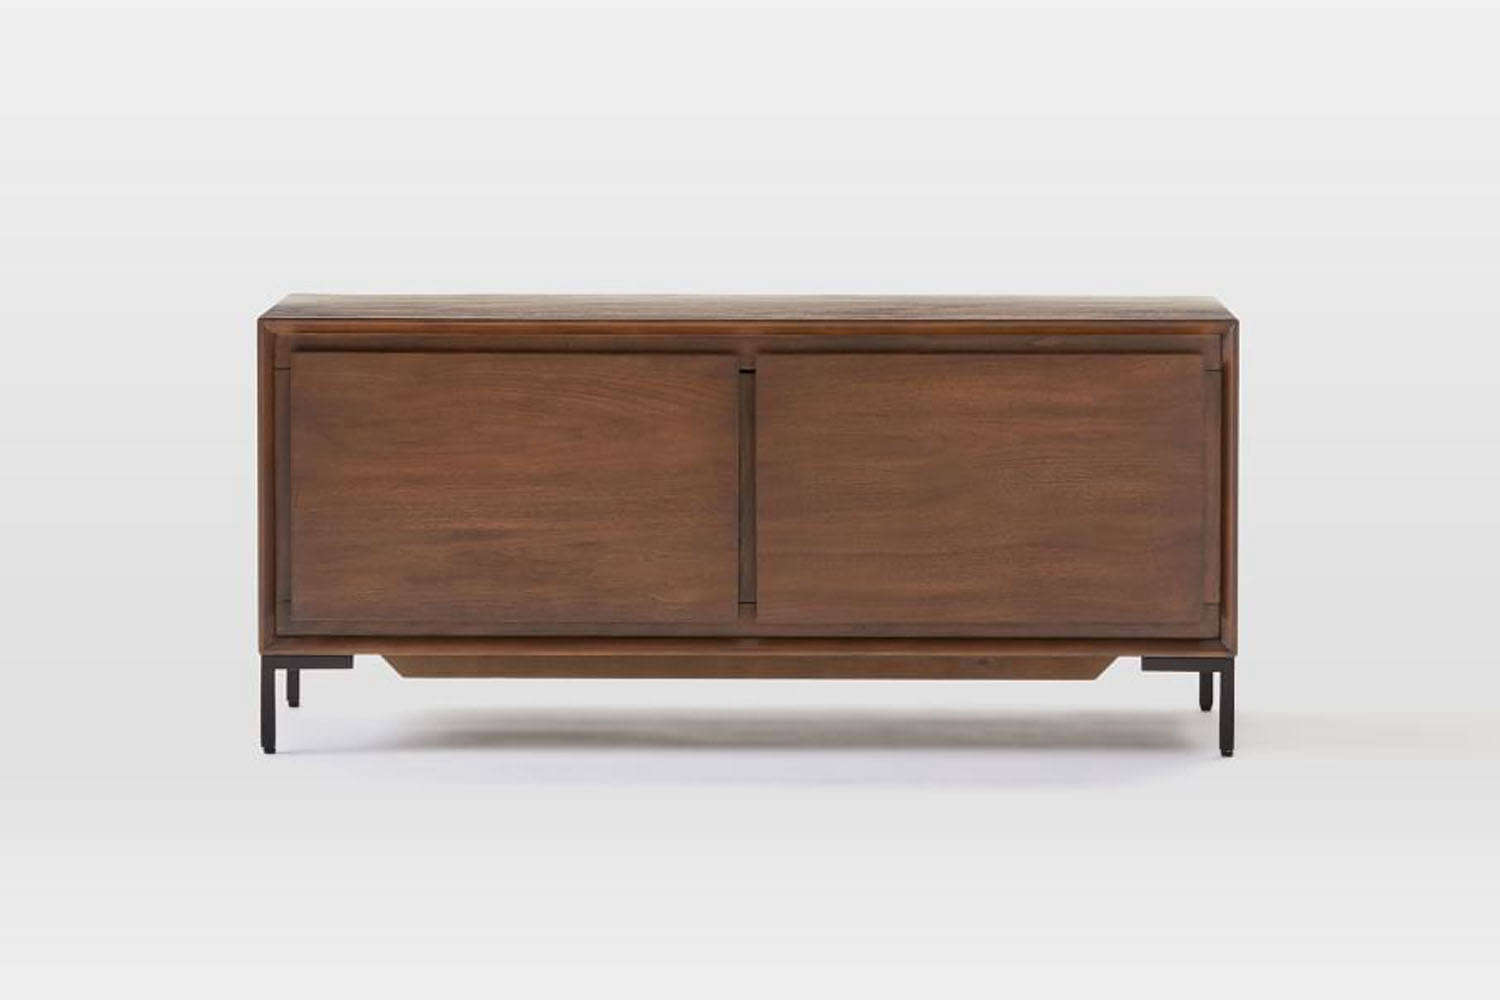 The West Elm Nolan Collection Dark Walnut/Antique Bronze Bench is at the core made of poplar wood and finished with dark walnut; $499.